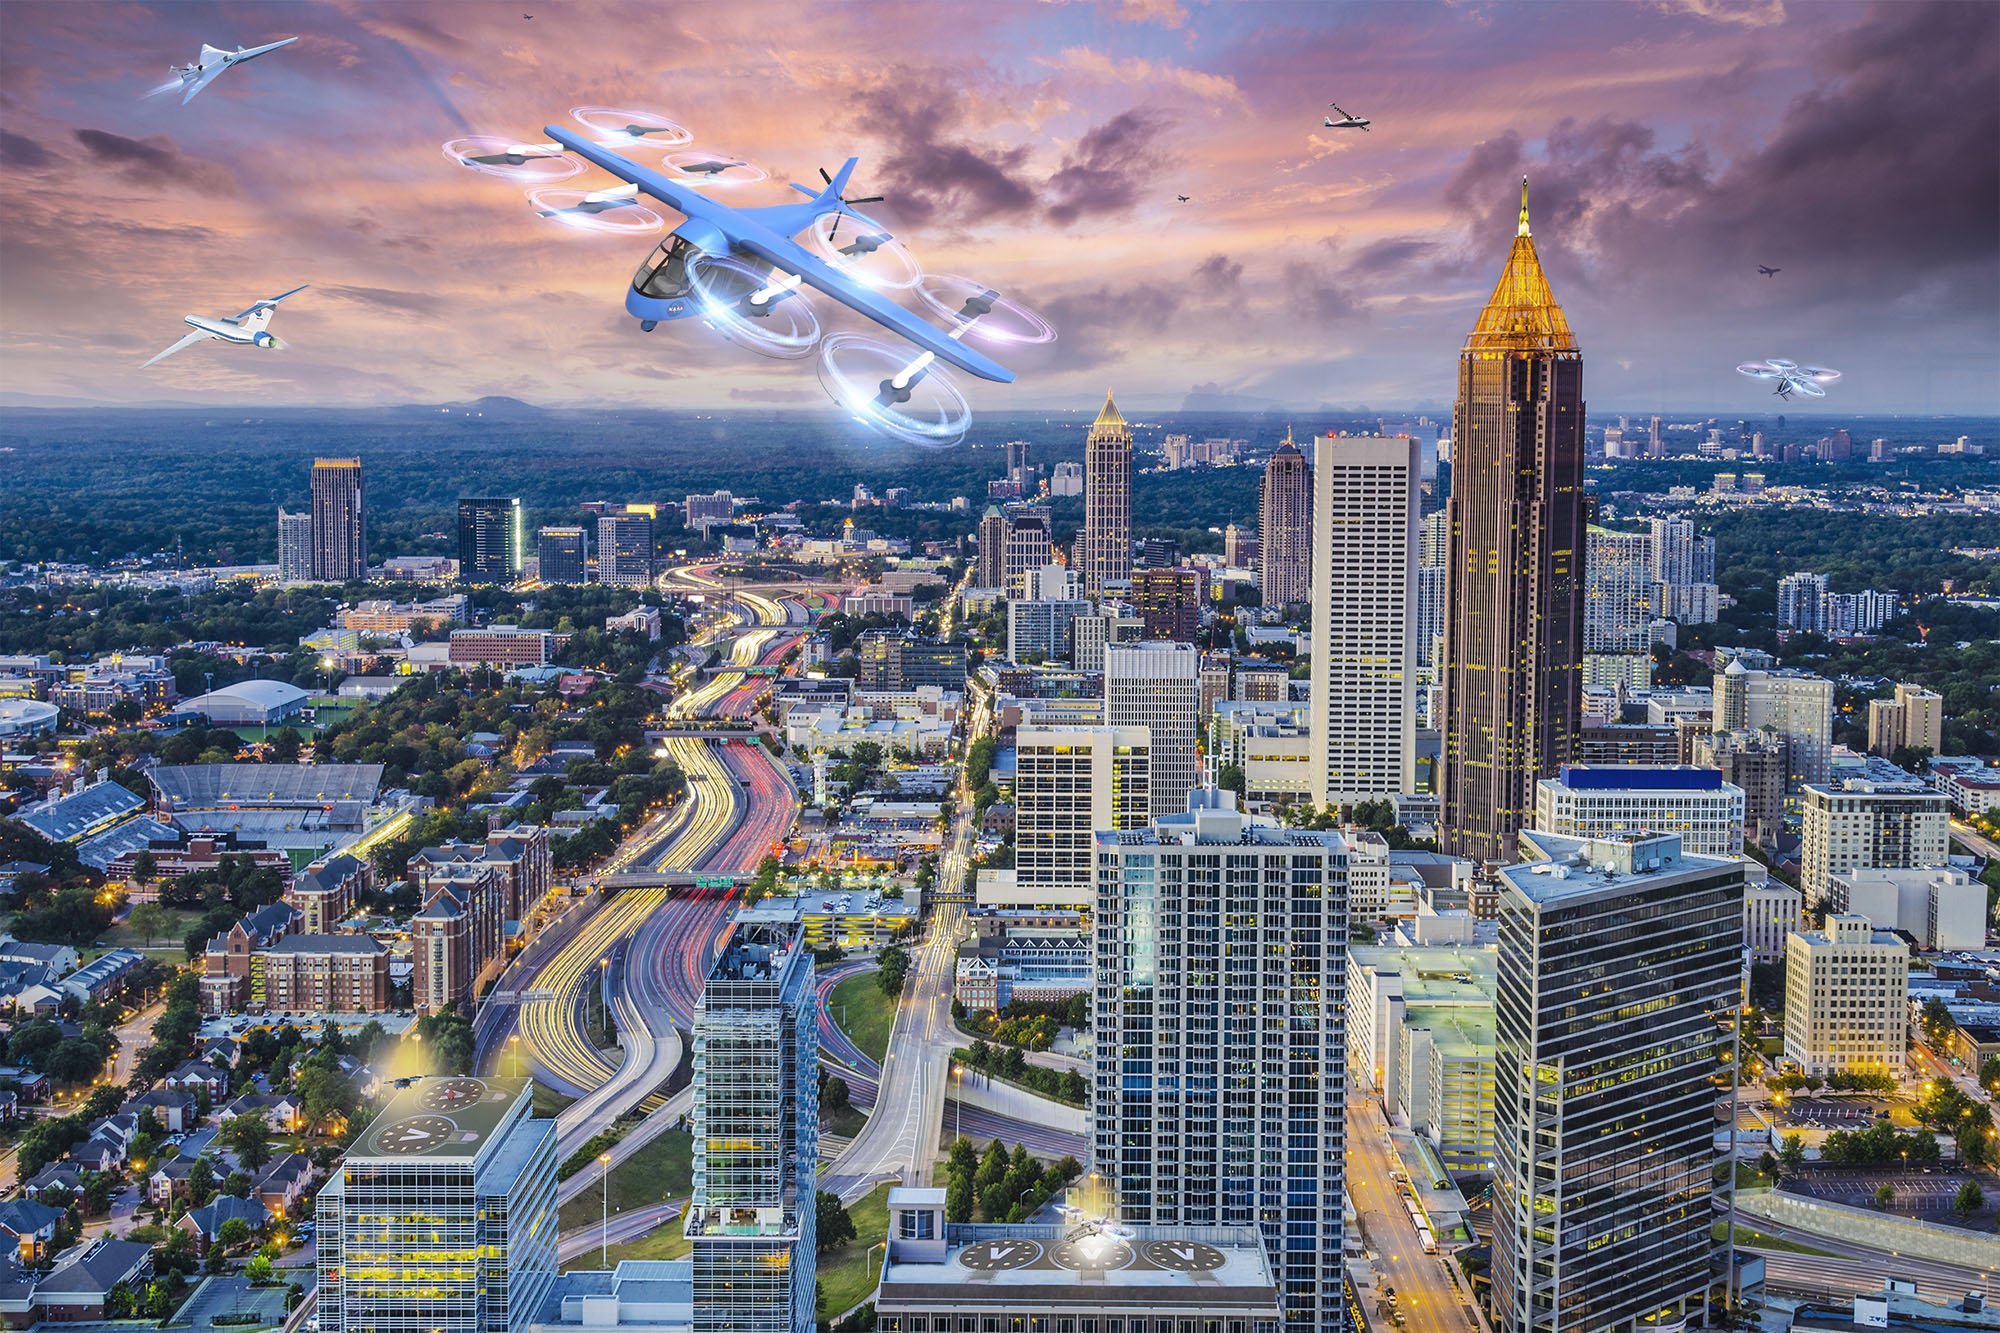 Drones and flying car buzzing by downtown Atlanta, part of a speculative NASA project